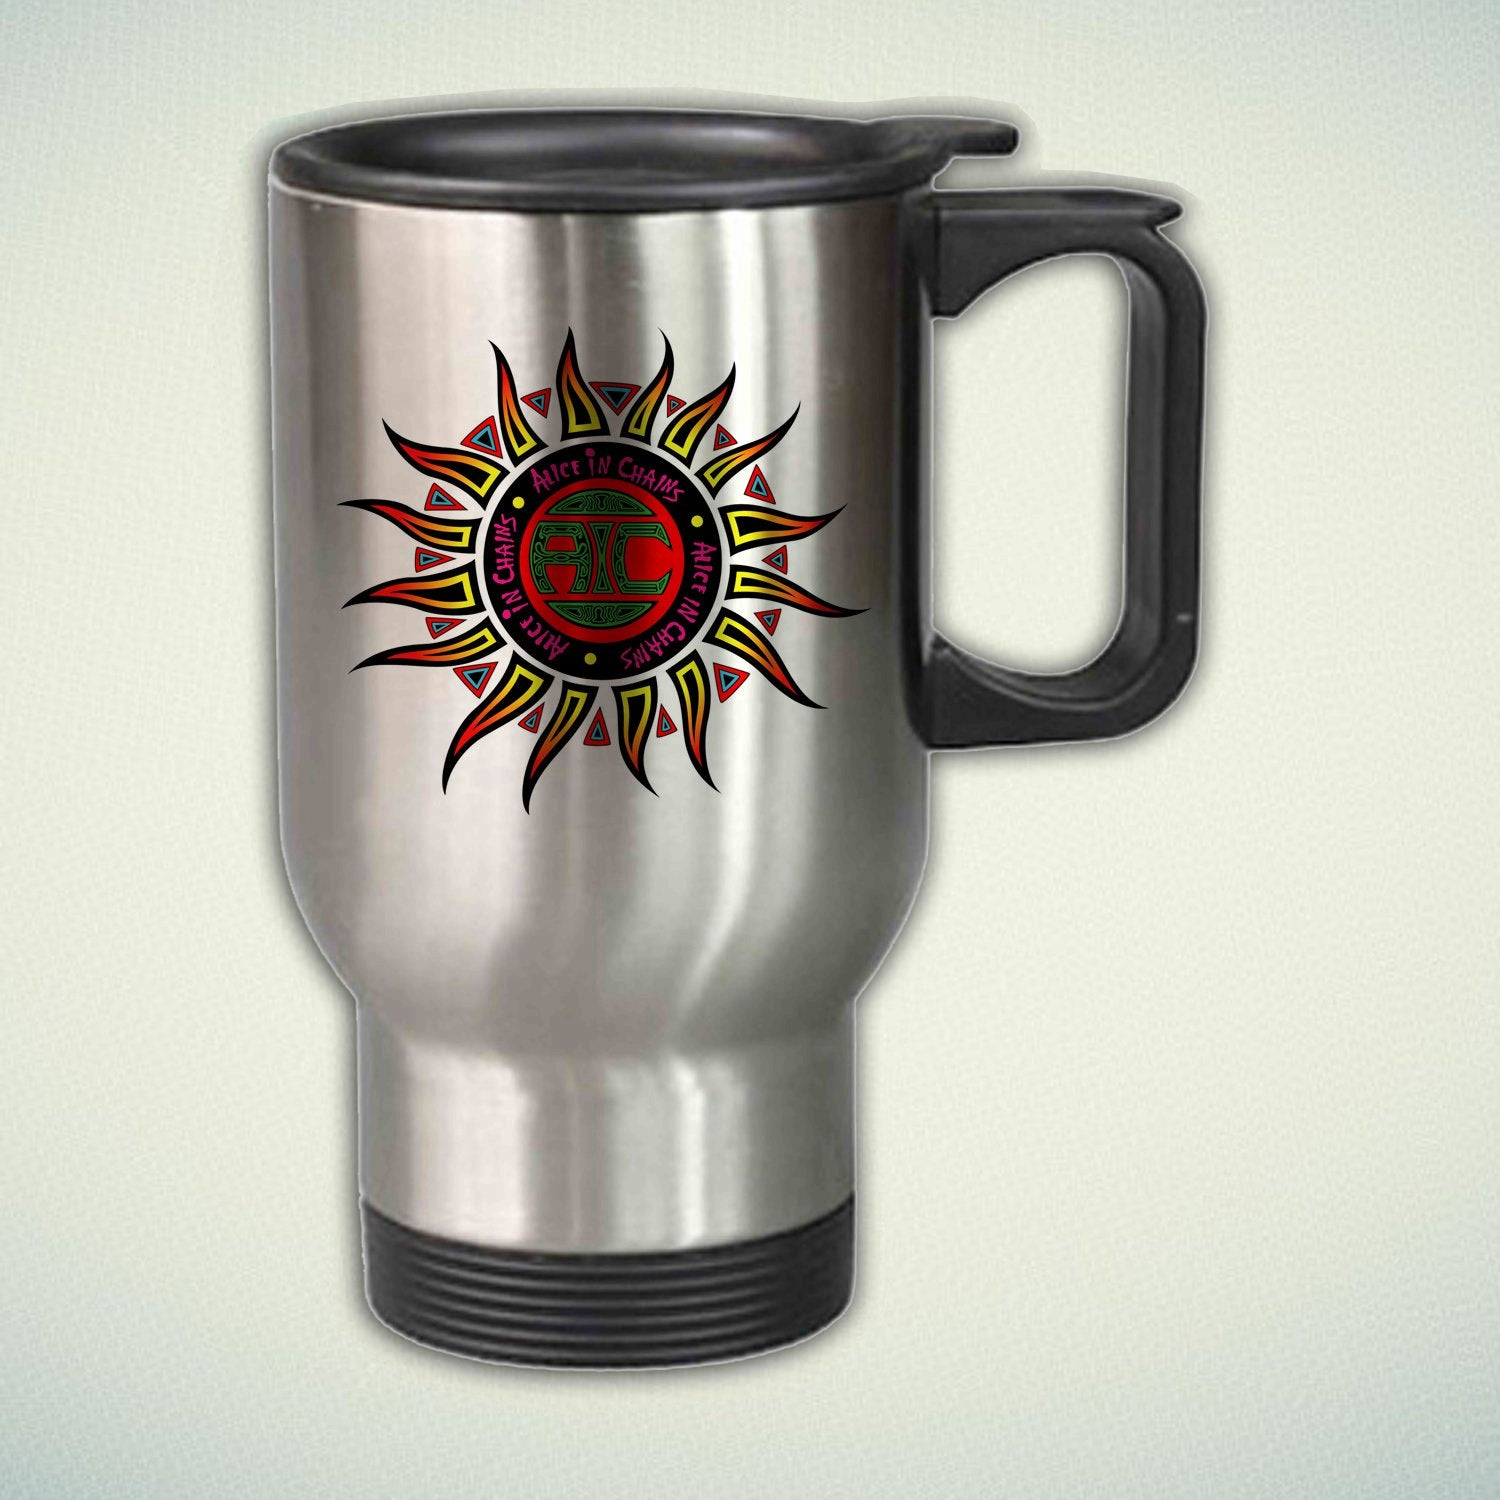 Alice in Chains Logo 14oz Stainless Steel Travel Mug